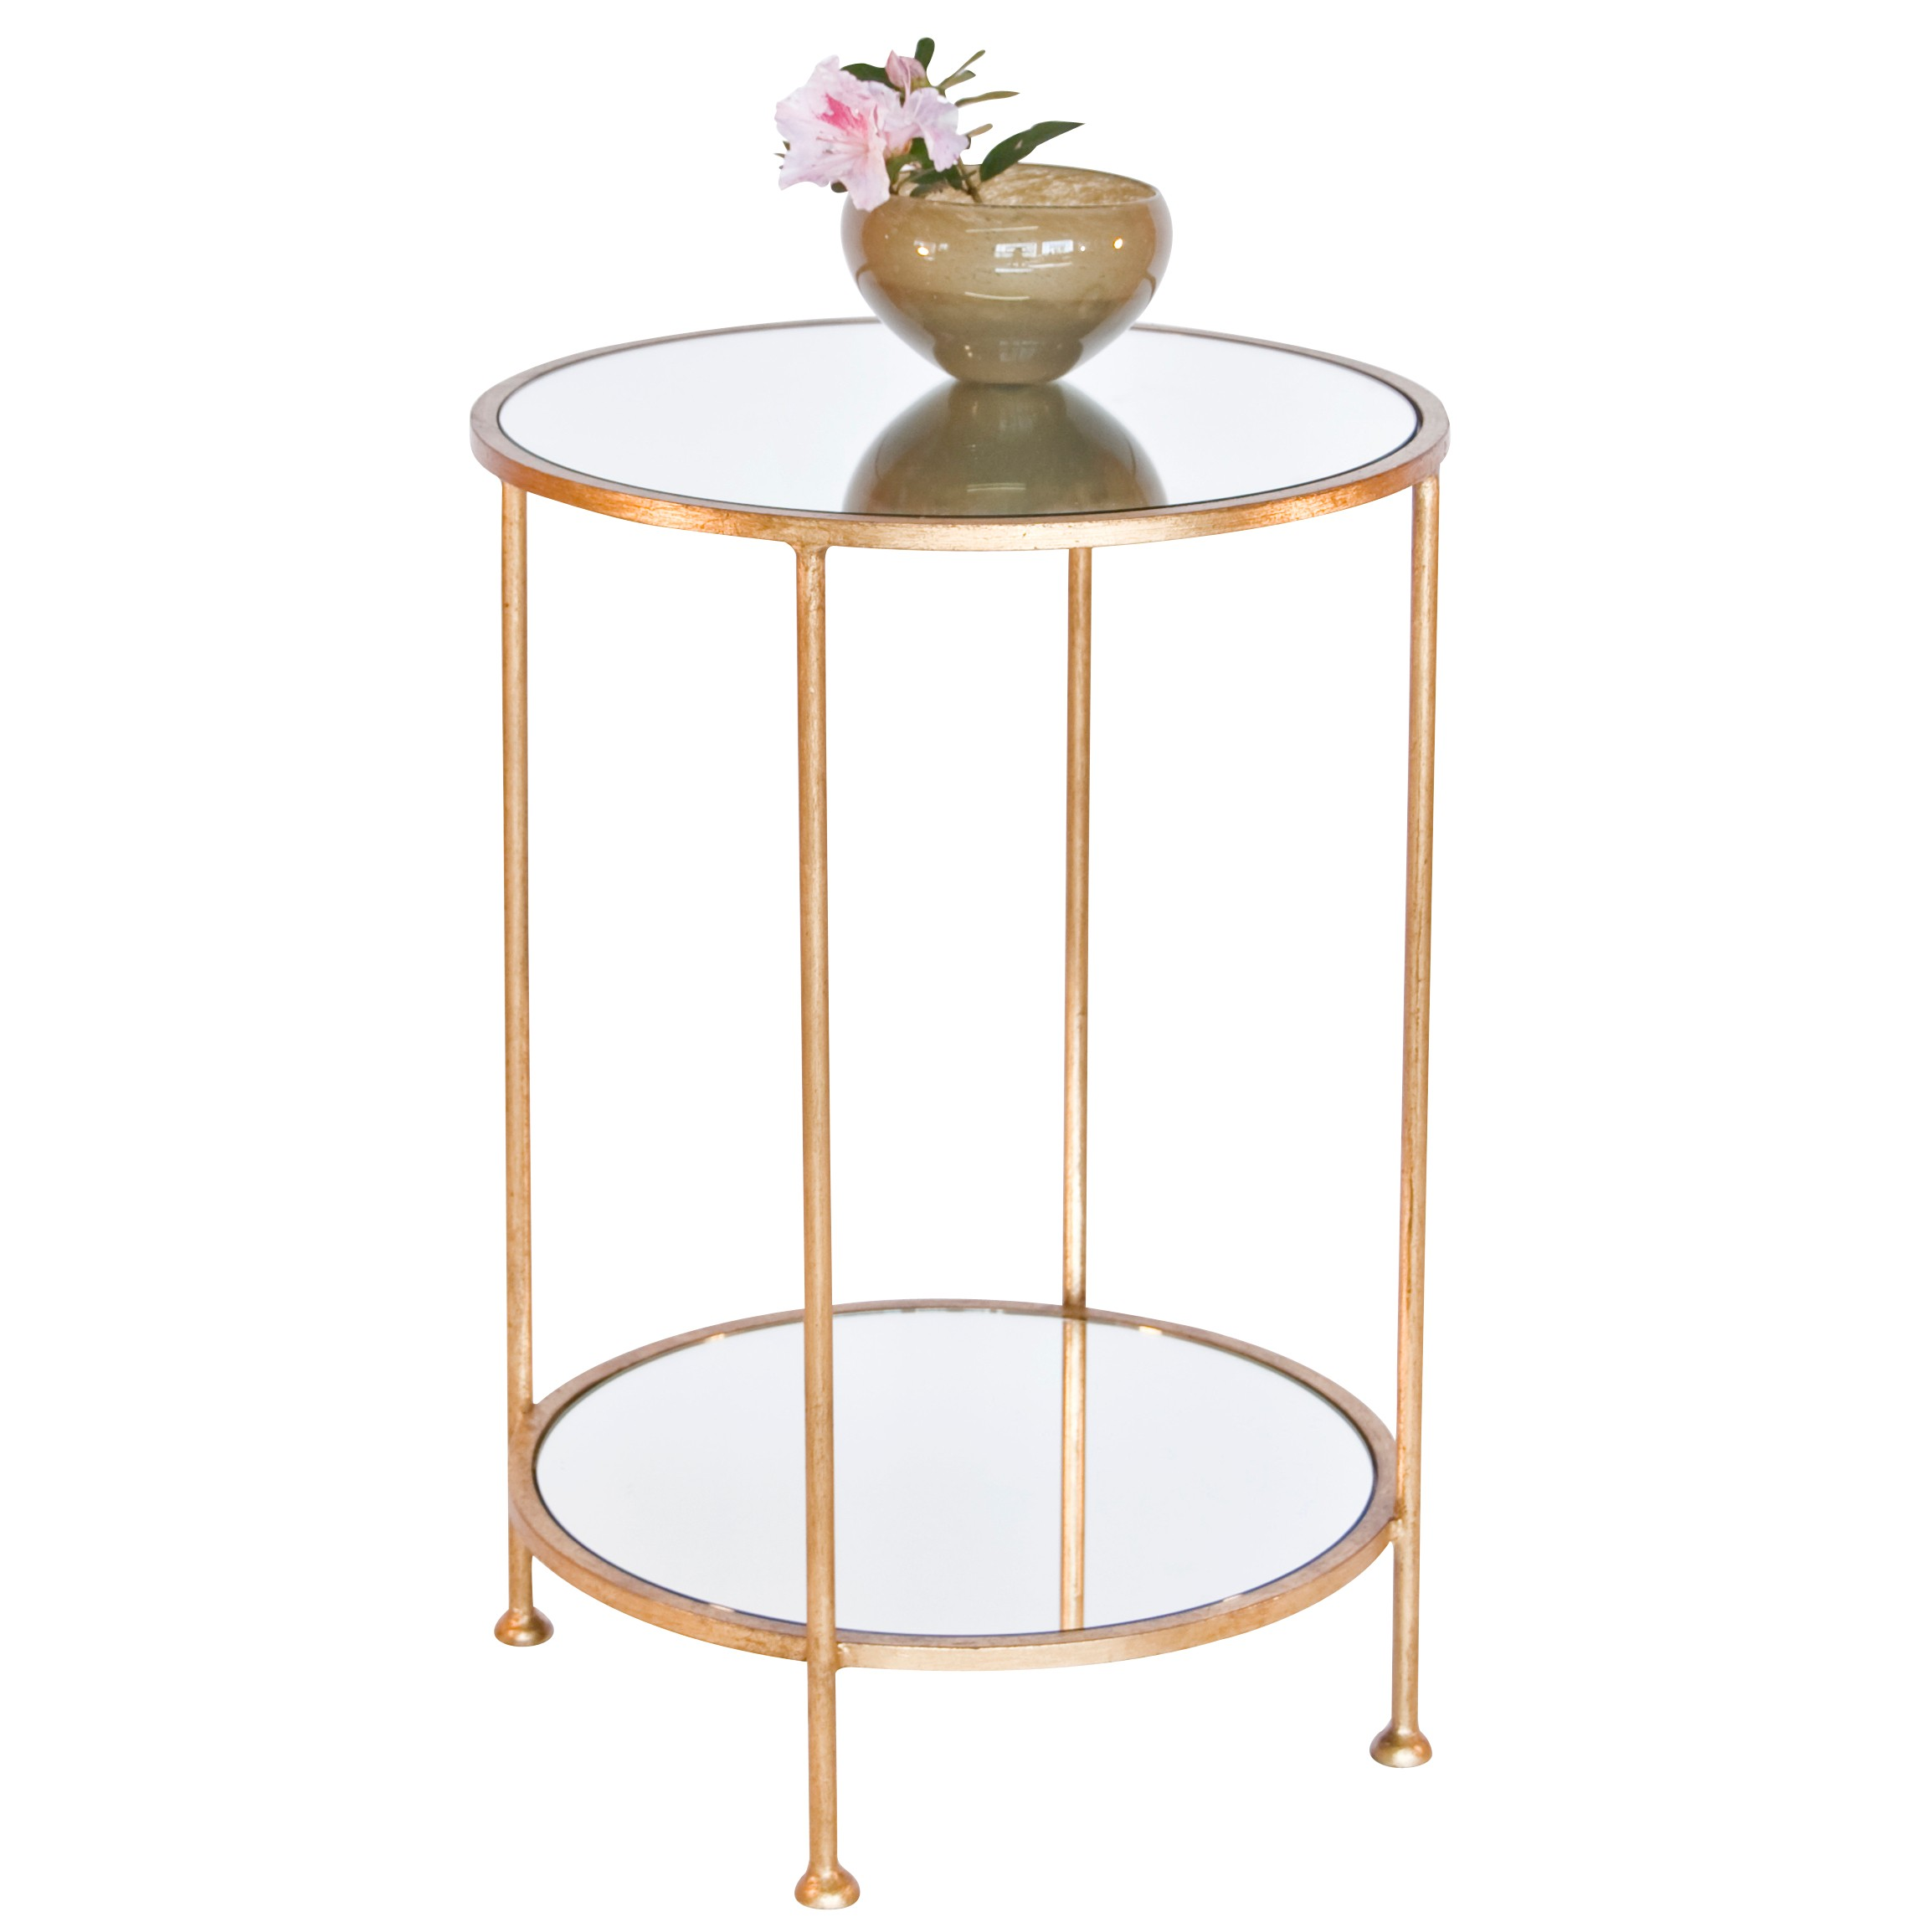 furniture elegant mirrored accent table for home ideas worlds away chico small tier gold leaf round occasional tables drawer end with storage drawers pedestal coffee bar lamp